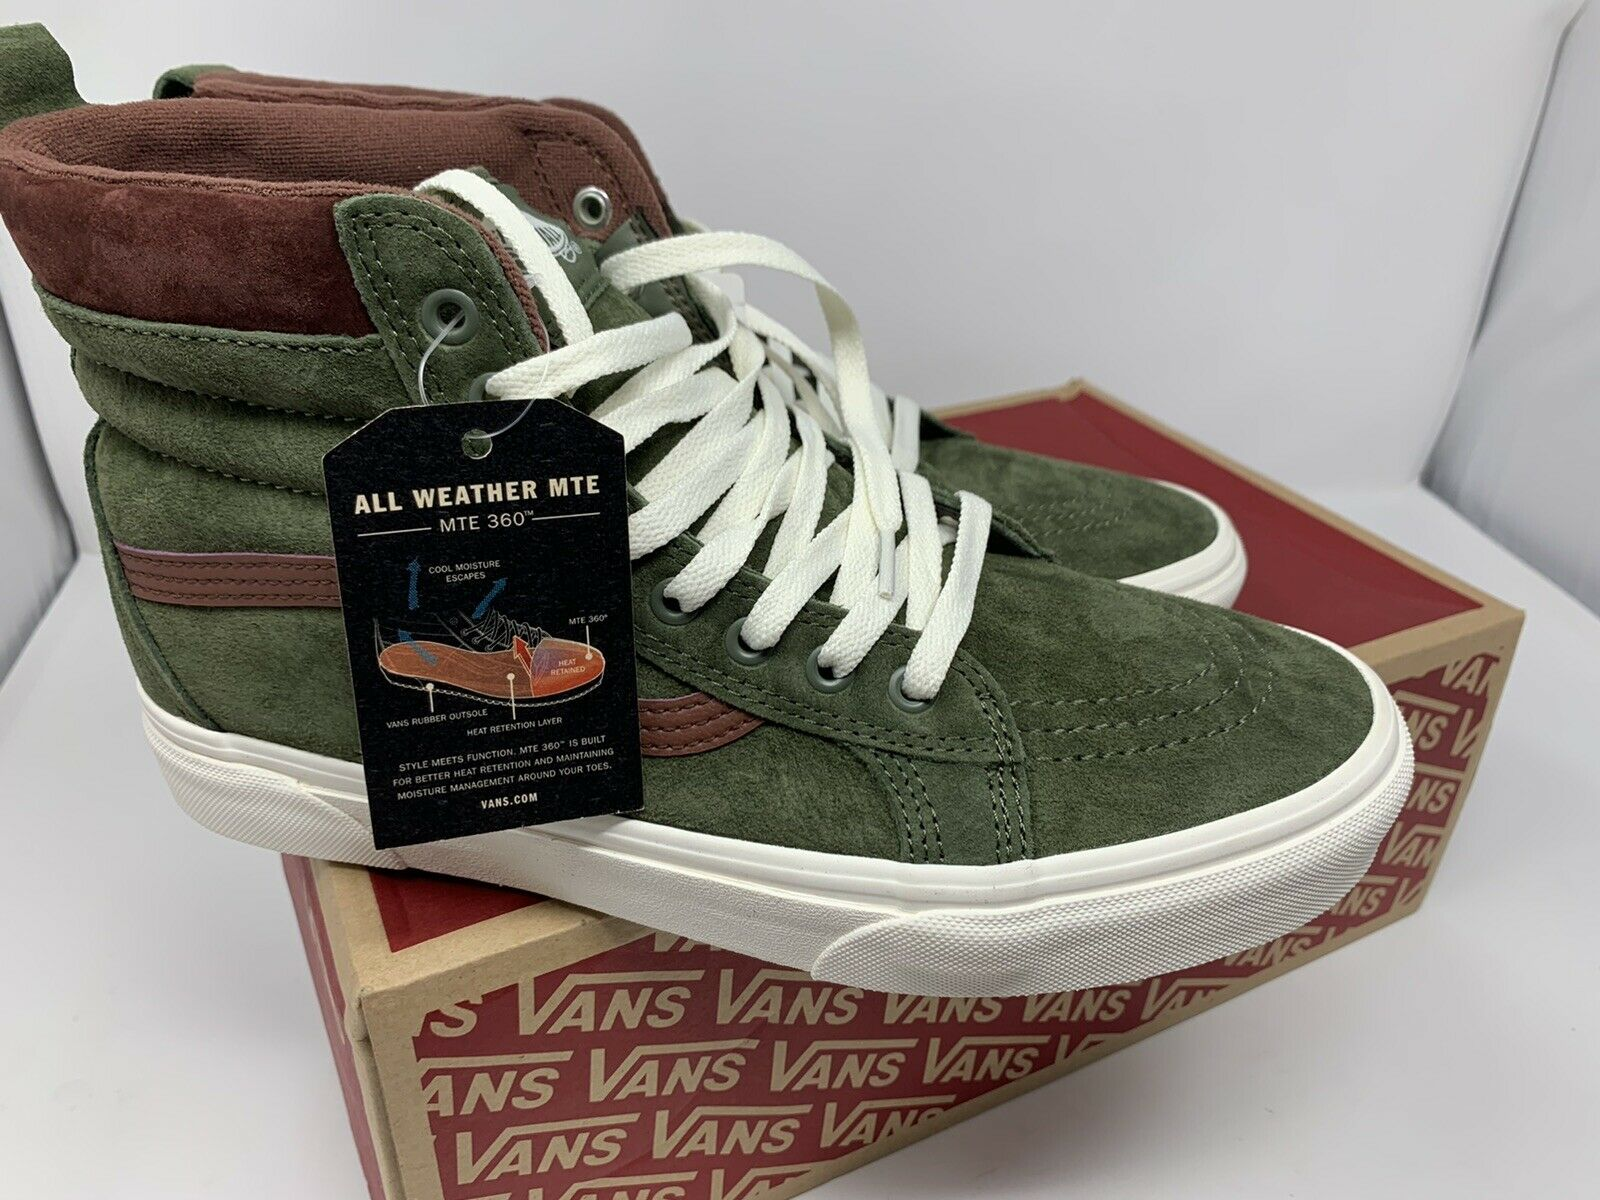 vans sk8 hi mte mens demitasse ballistic brown all weather suede boots size 8 for sale online ebay new vans sk8 hi mte all weather deep lichen green brown shoe men s size 10